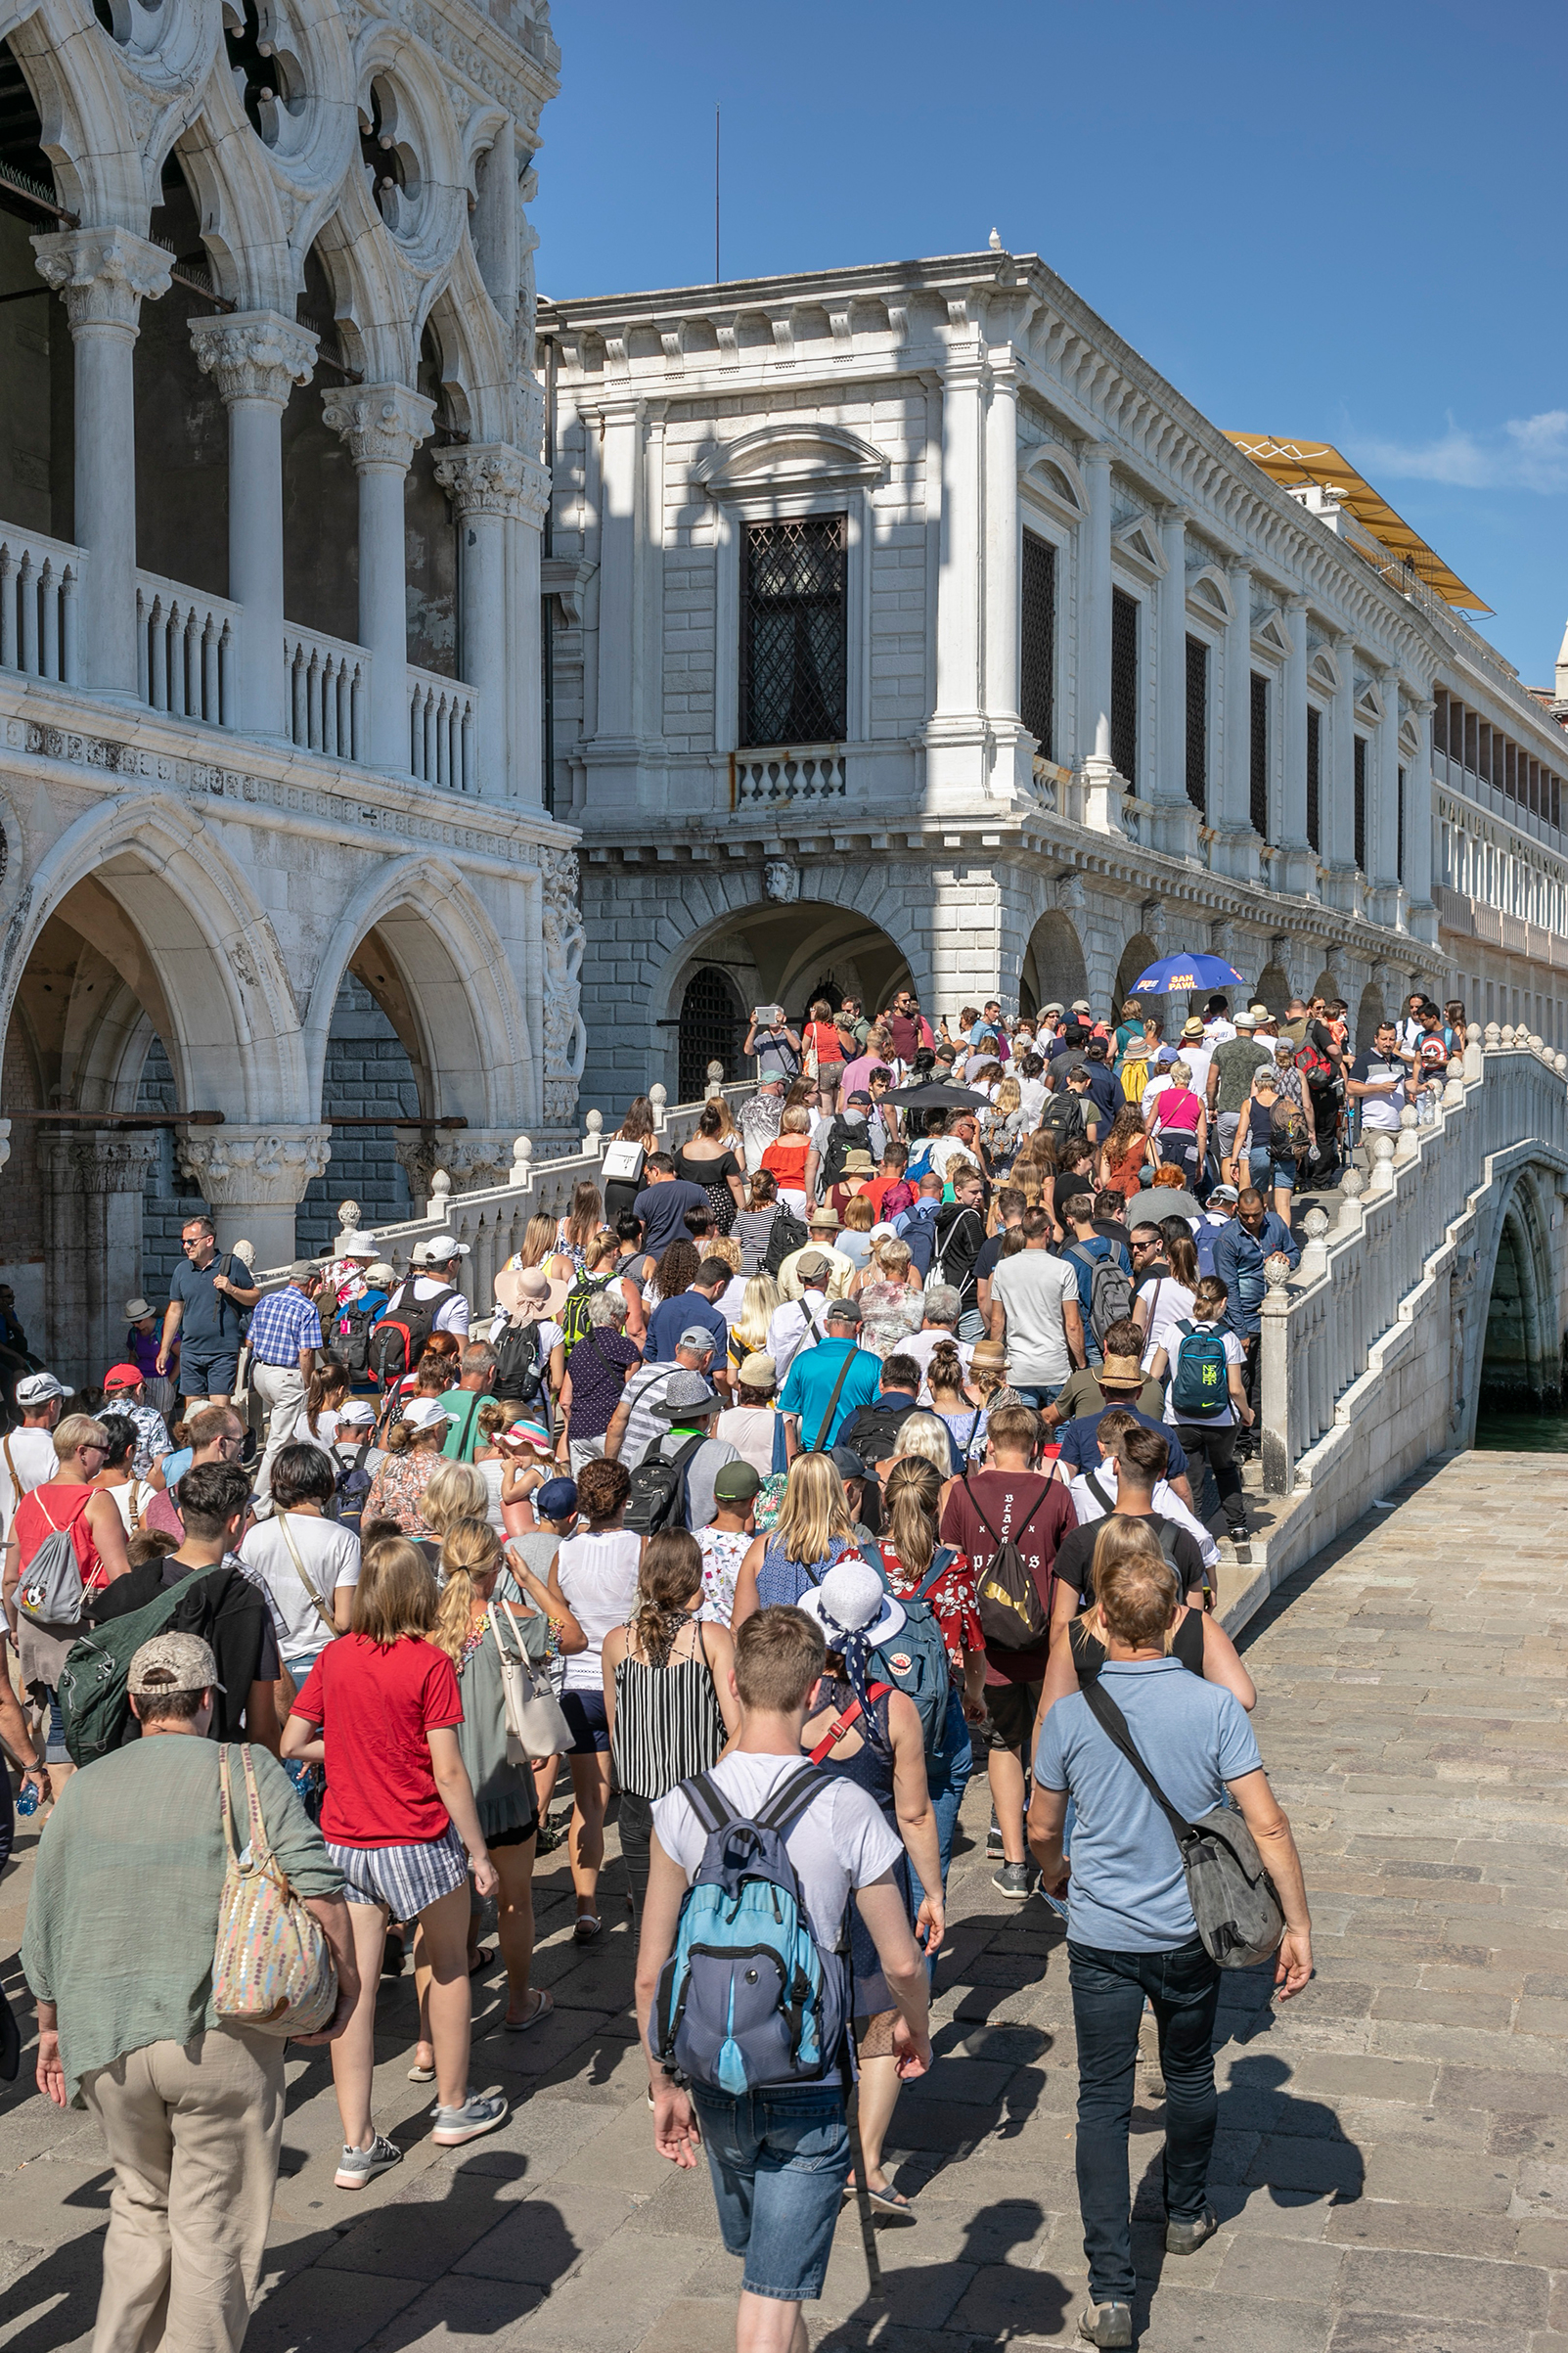 About 55,000 tourists visit Venice every day